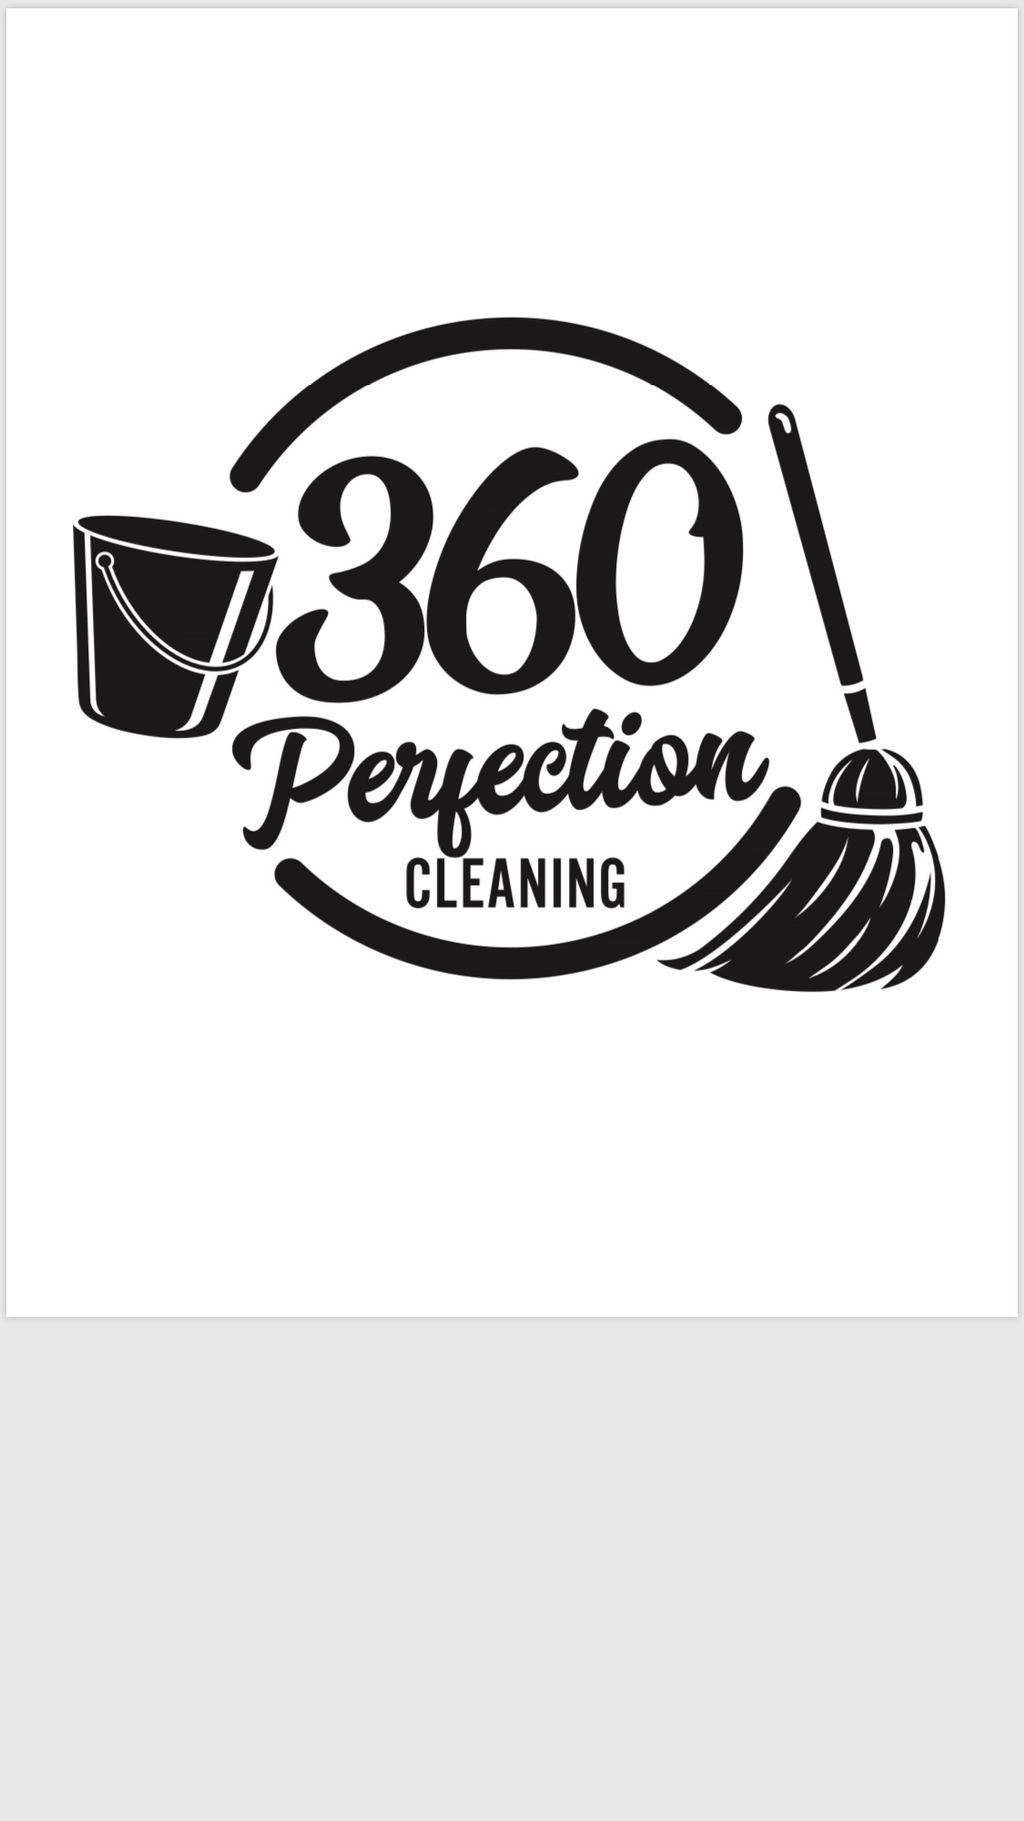 360 Perfection Cleaning